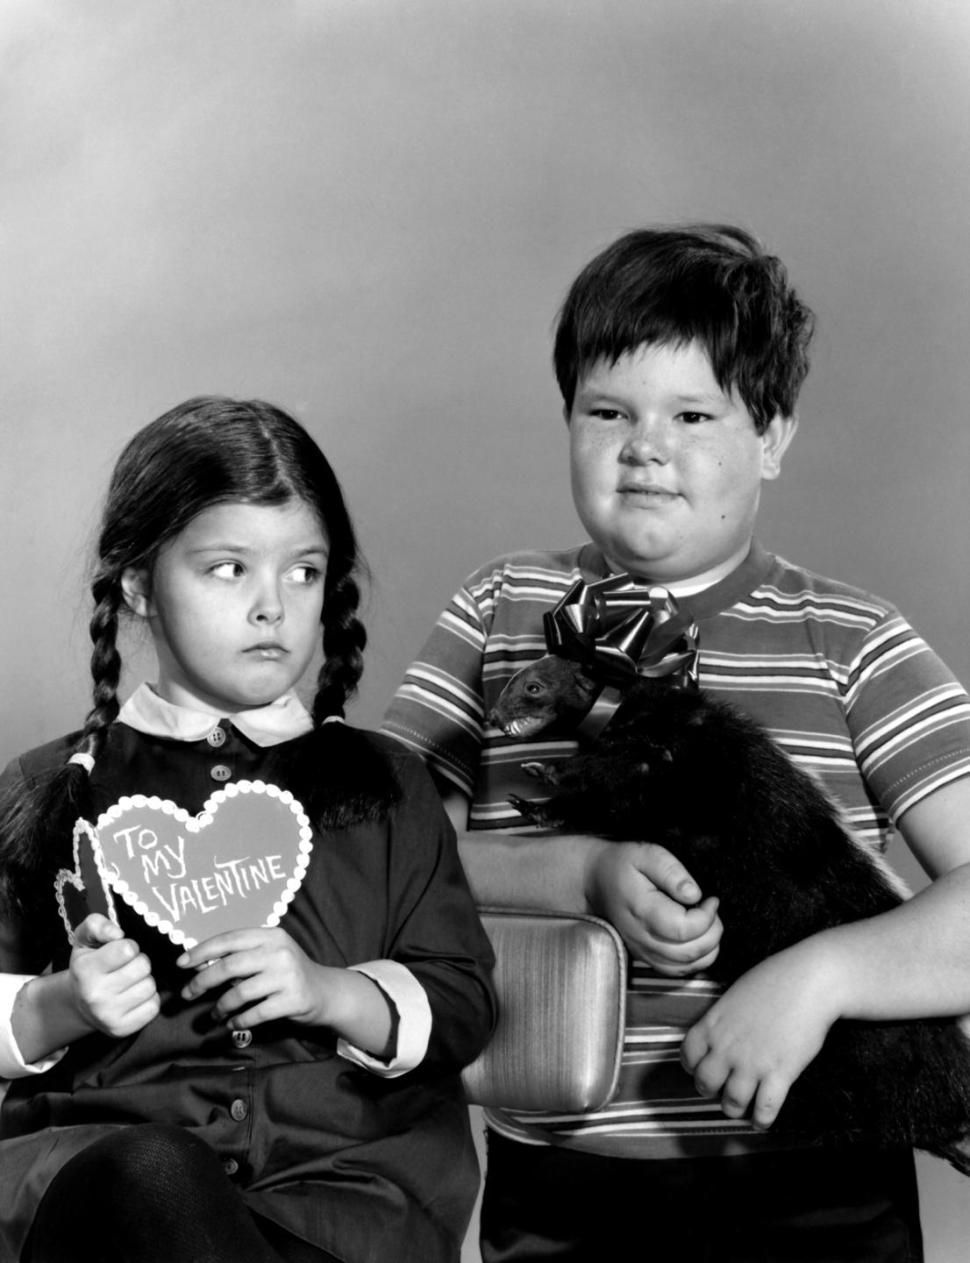 Ken Weatherwax Pugsley From The Addams Family Dead At 59